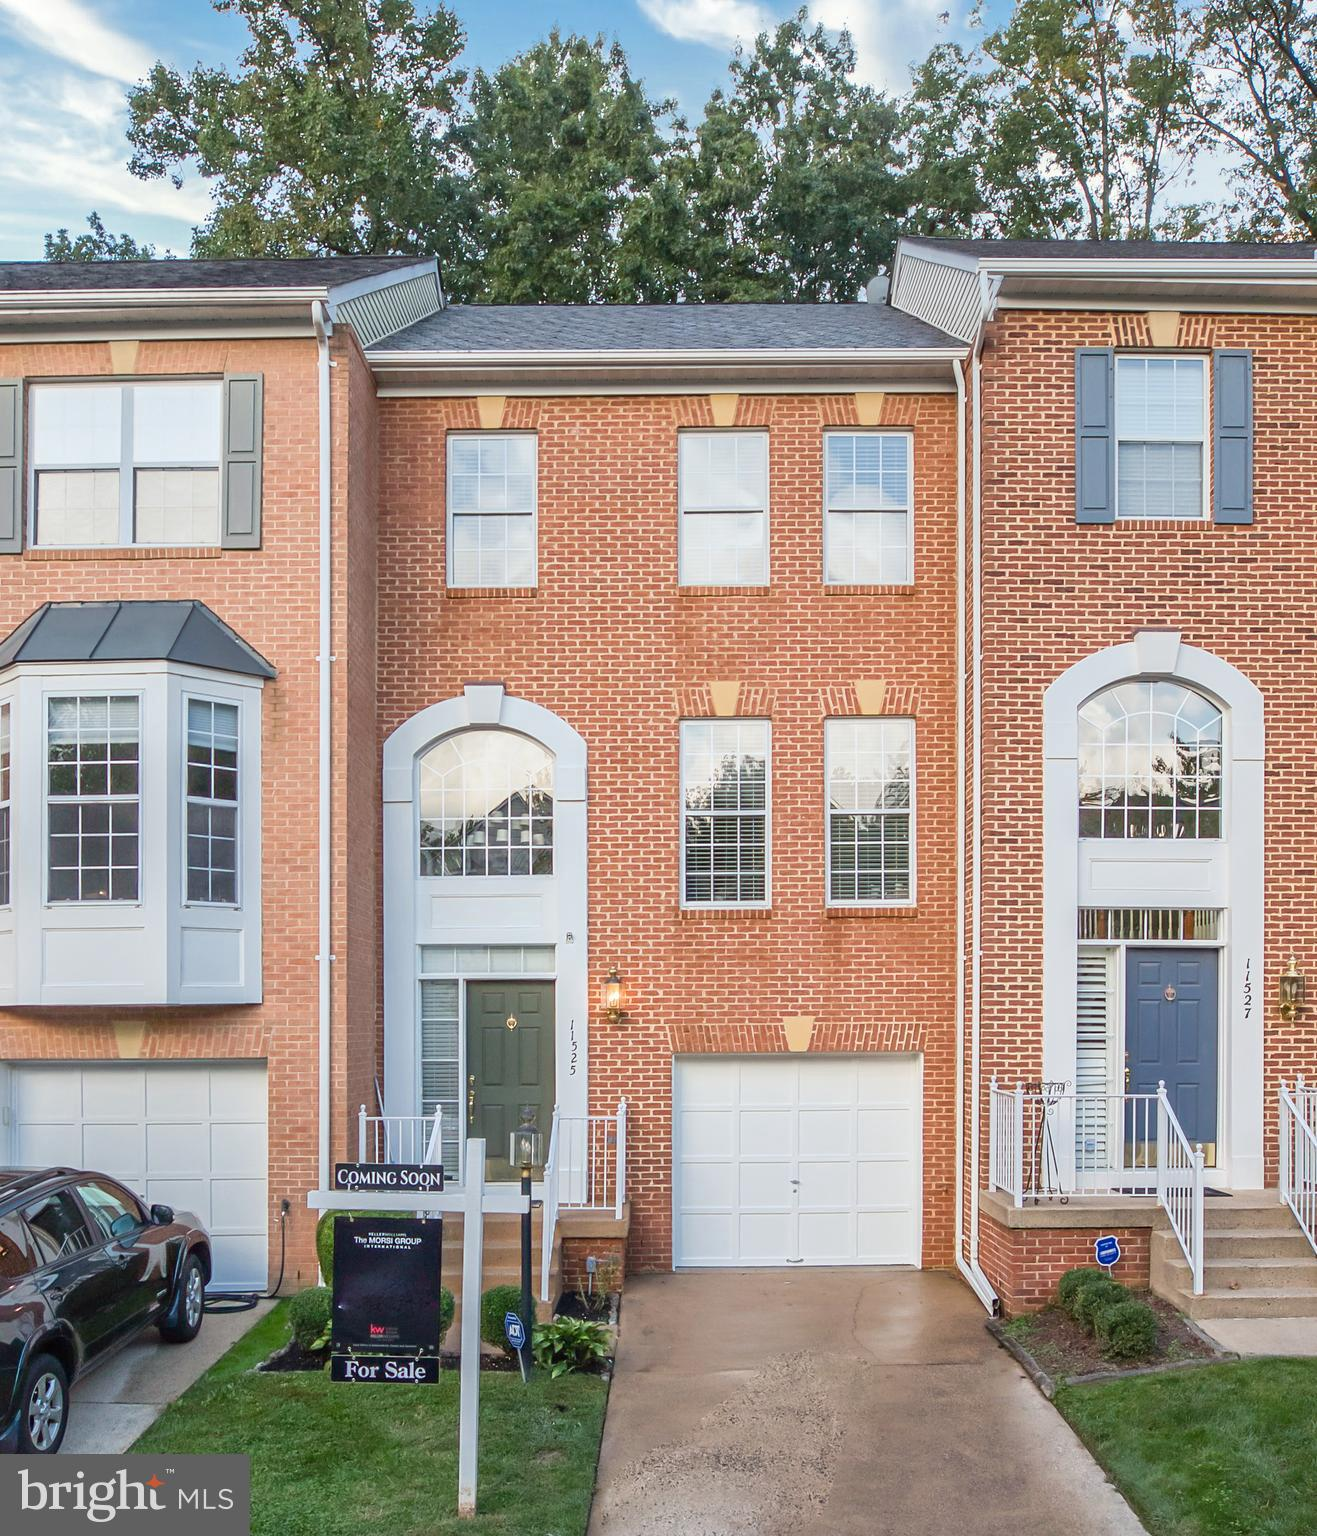 Beautiful 3-level townhome in the heart of Reston! Large windows let in tons of natural light. Open